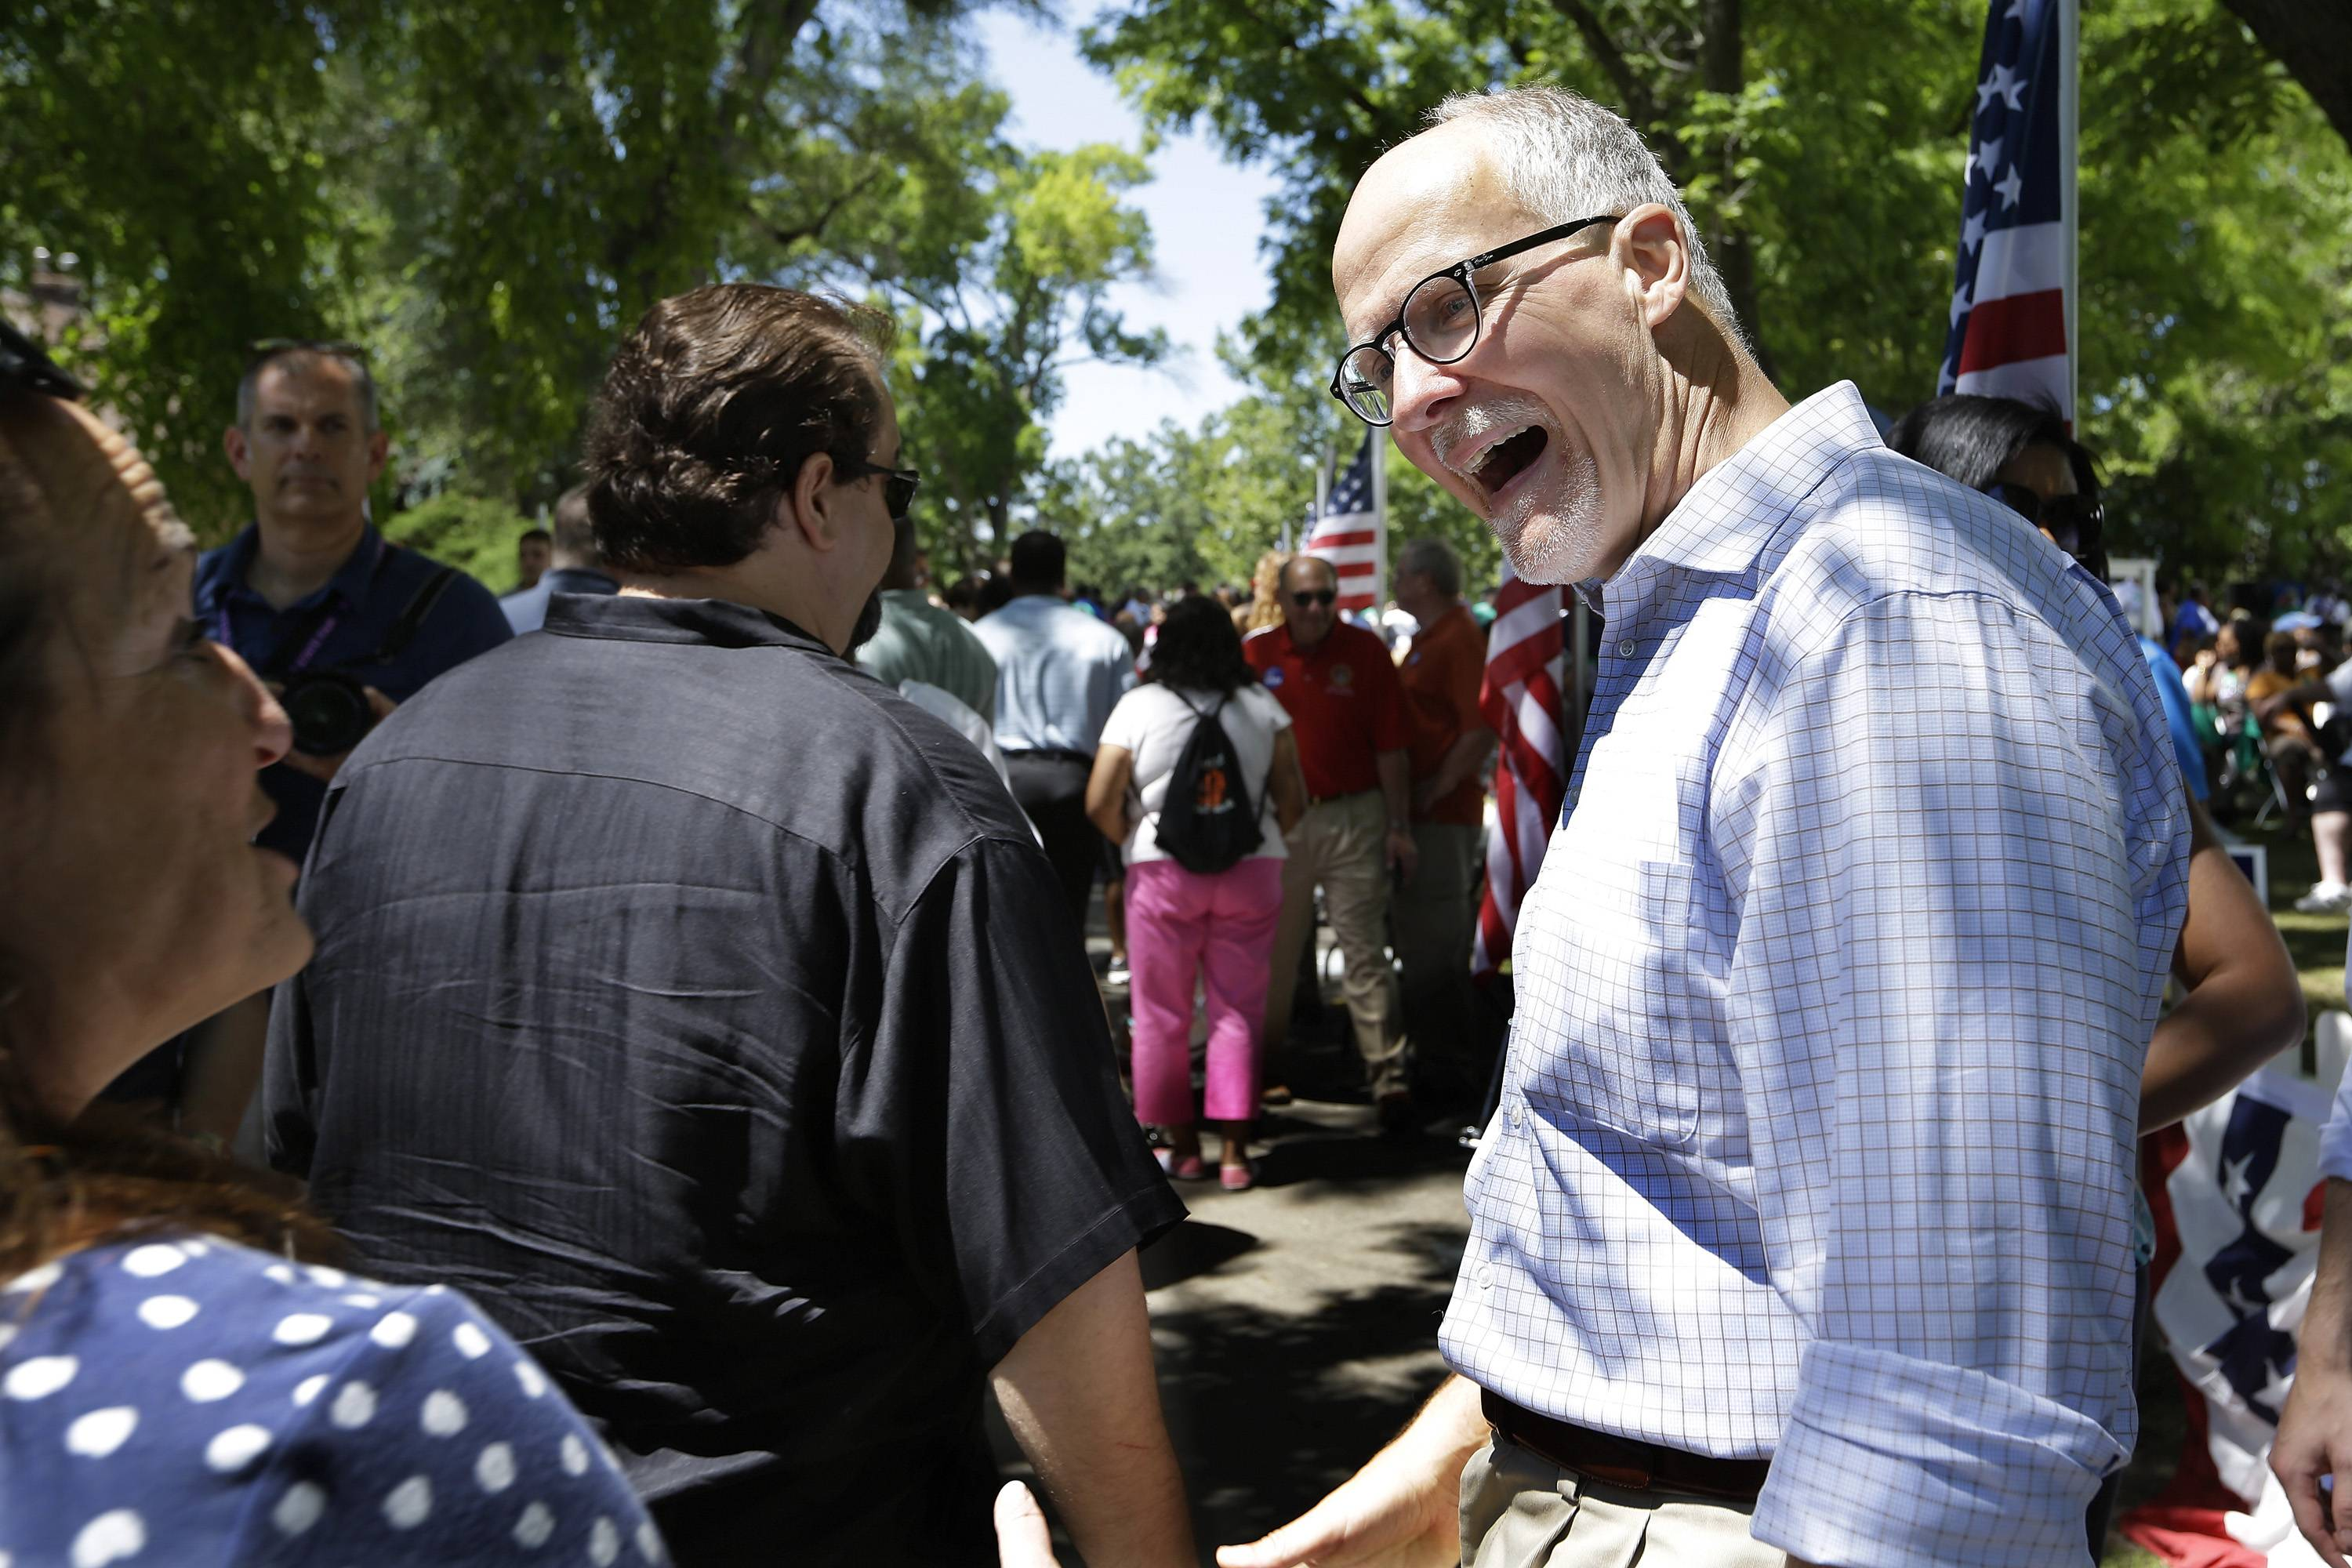 Paul Vallas, who is running for lieutenant governor as the running mate to Illinois Gov. Pat Quinn, campaigns and participates in Governor's Day at the Illinois State Fair, Wednesday in Springfield.